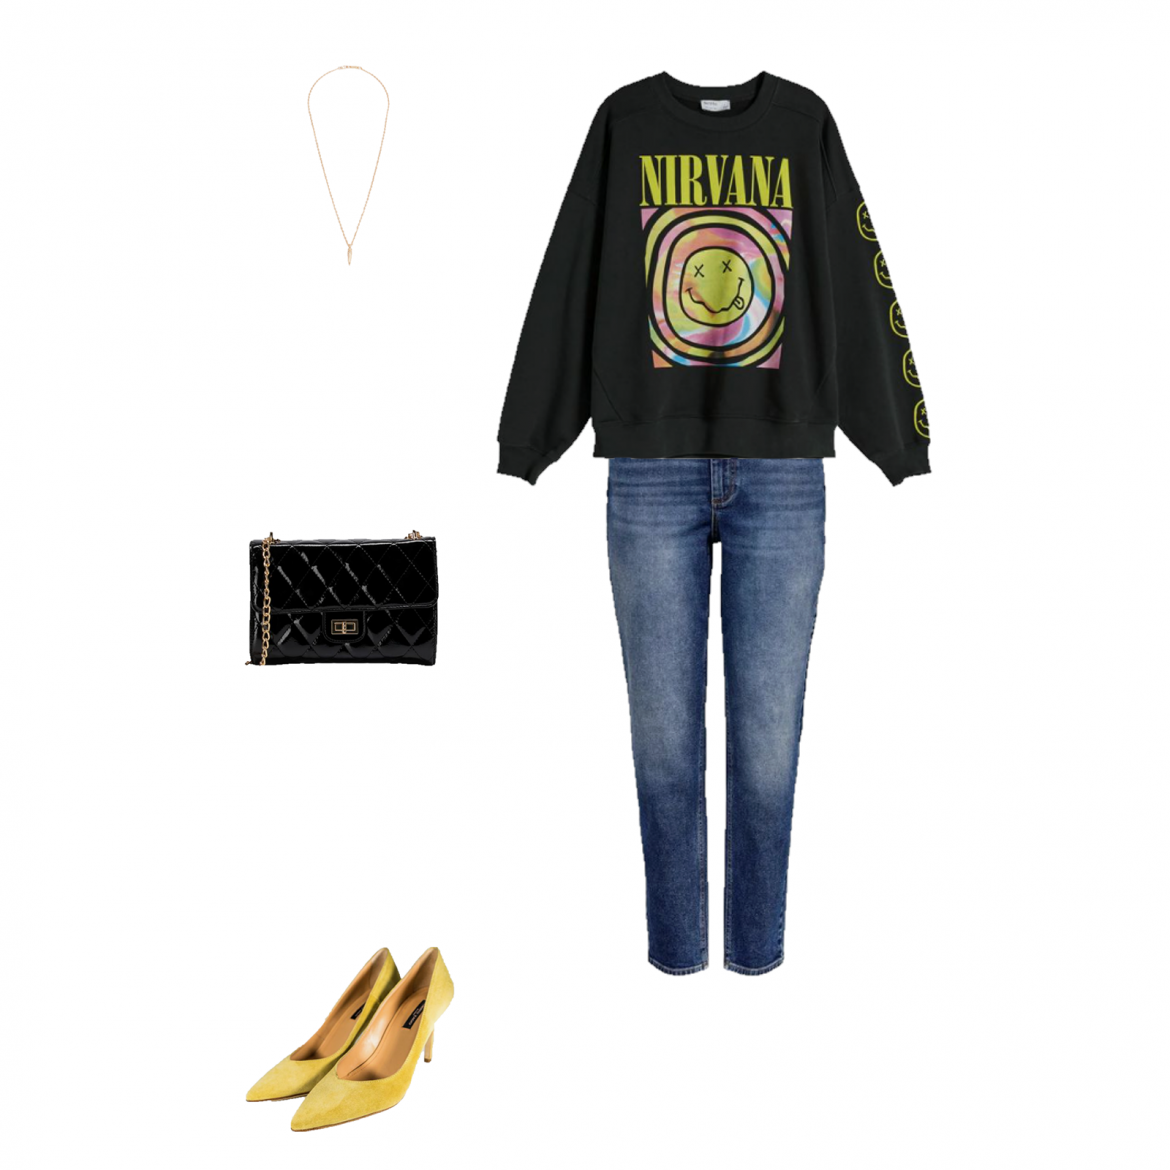 Outfit of the day: sweatshirt and heels